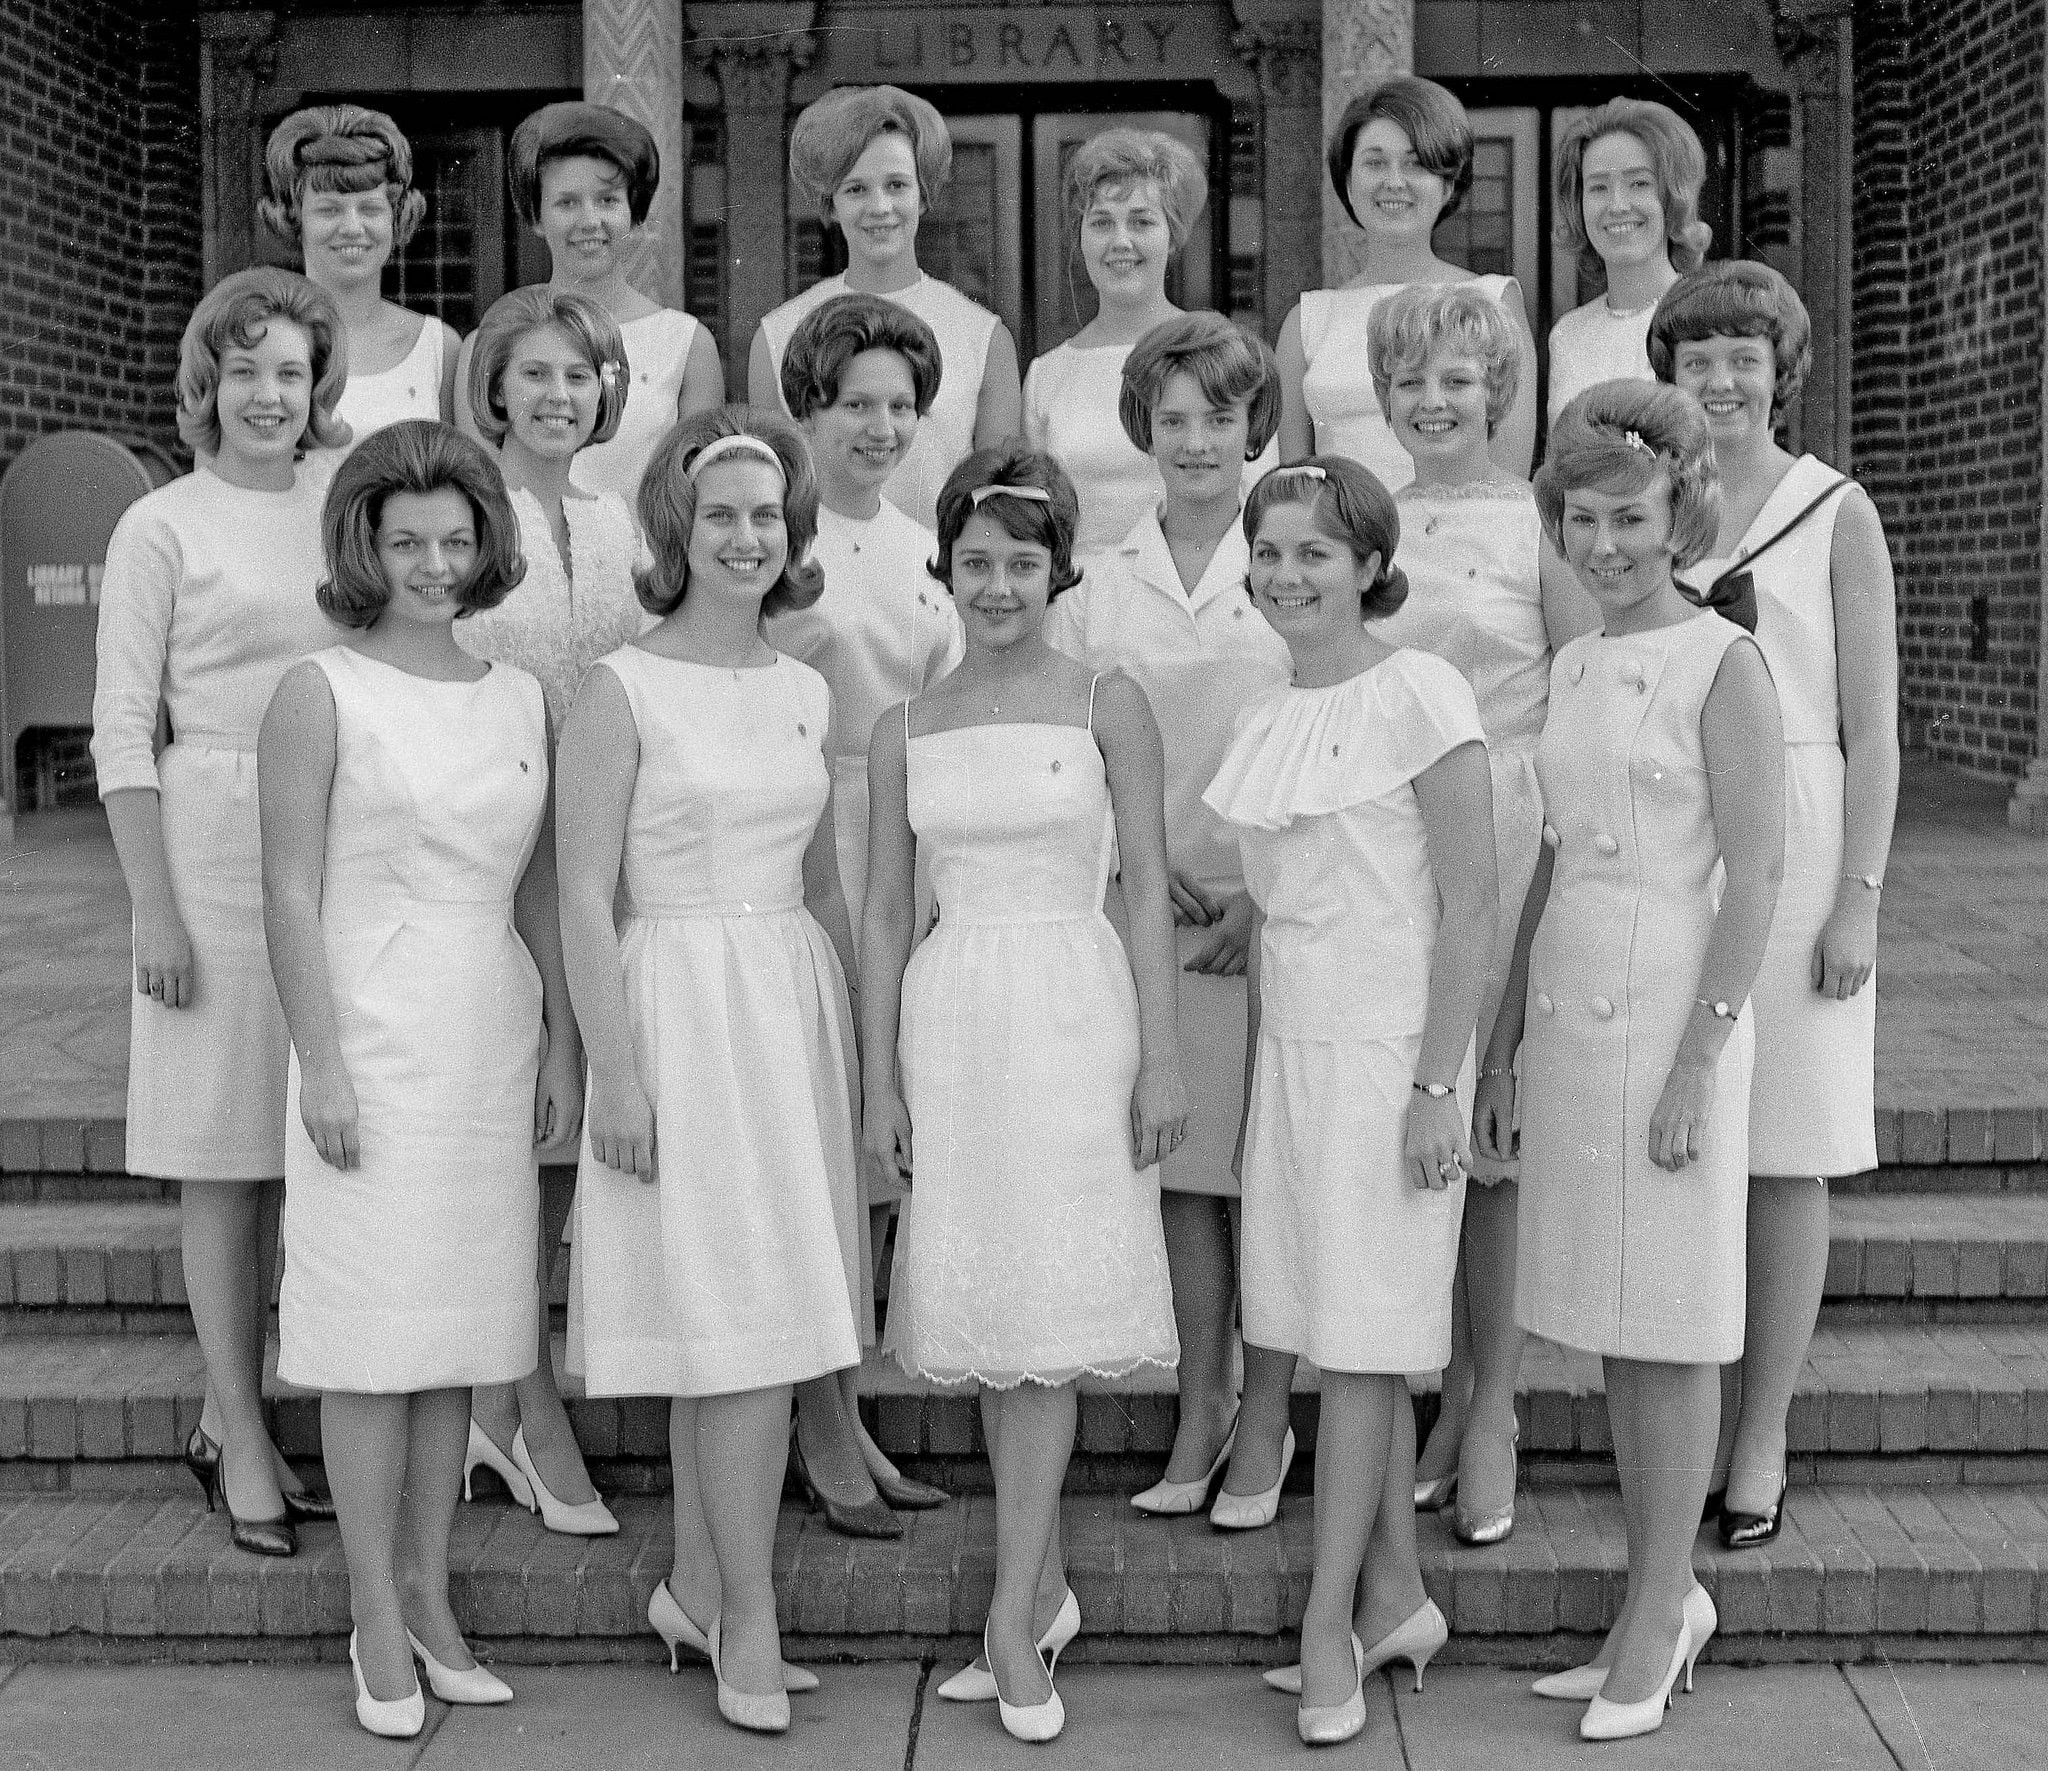 The Most Notorious Sororities in the United States